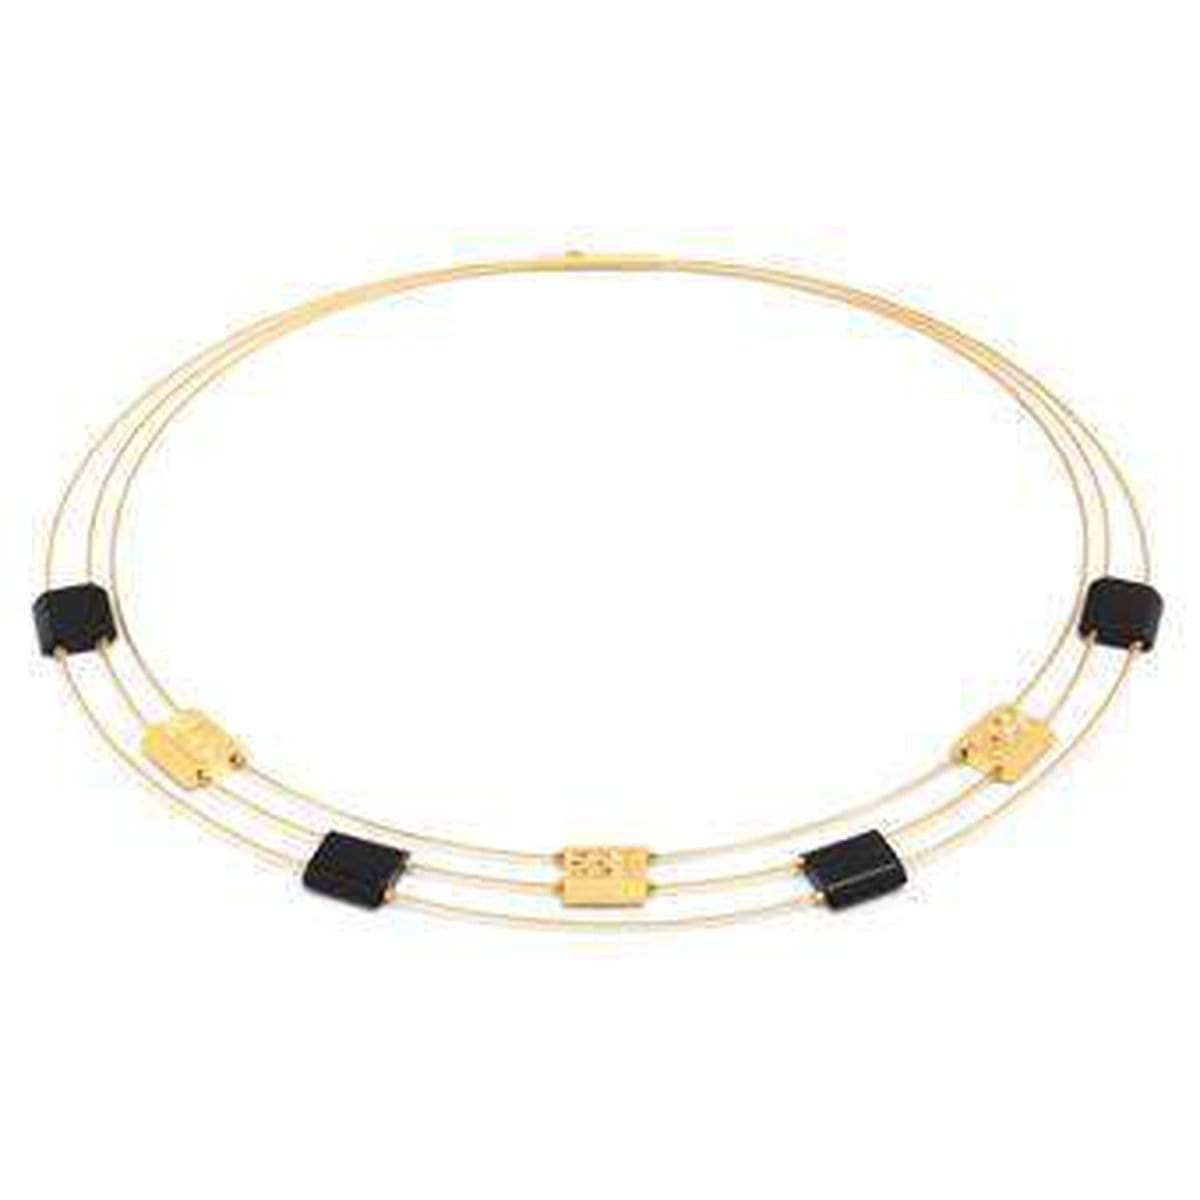 Movenia Onyx Necklace - 84840896-Bernd Wolf-Renee Taylor Gallery